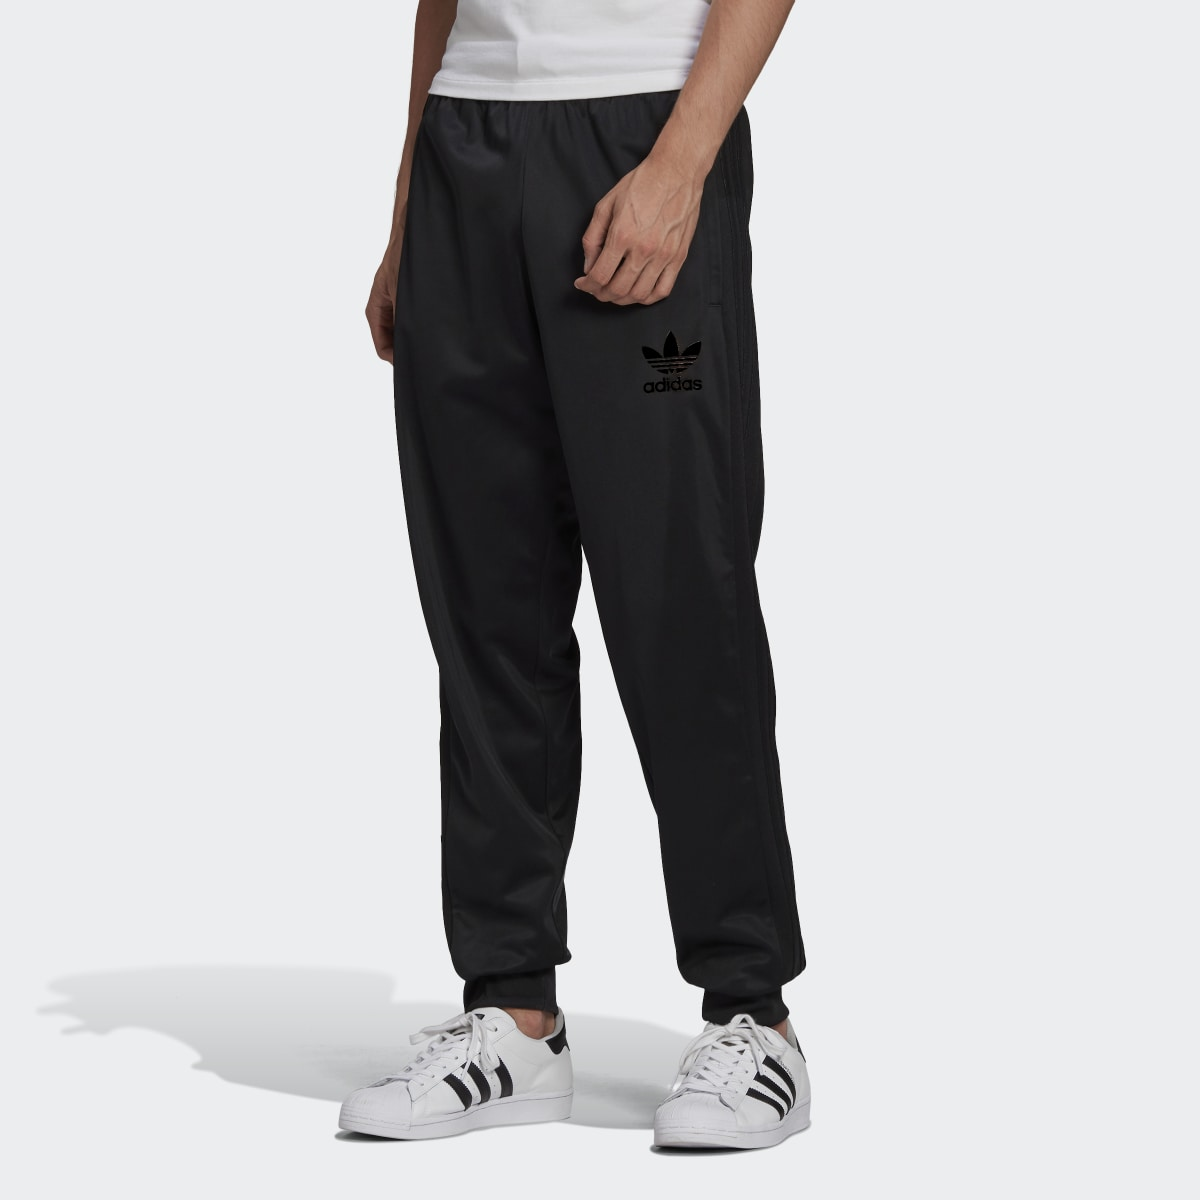 Chile 20 Track Pants